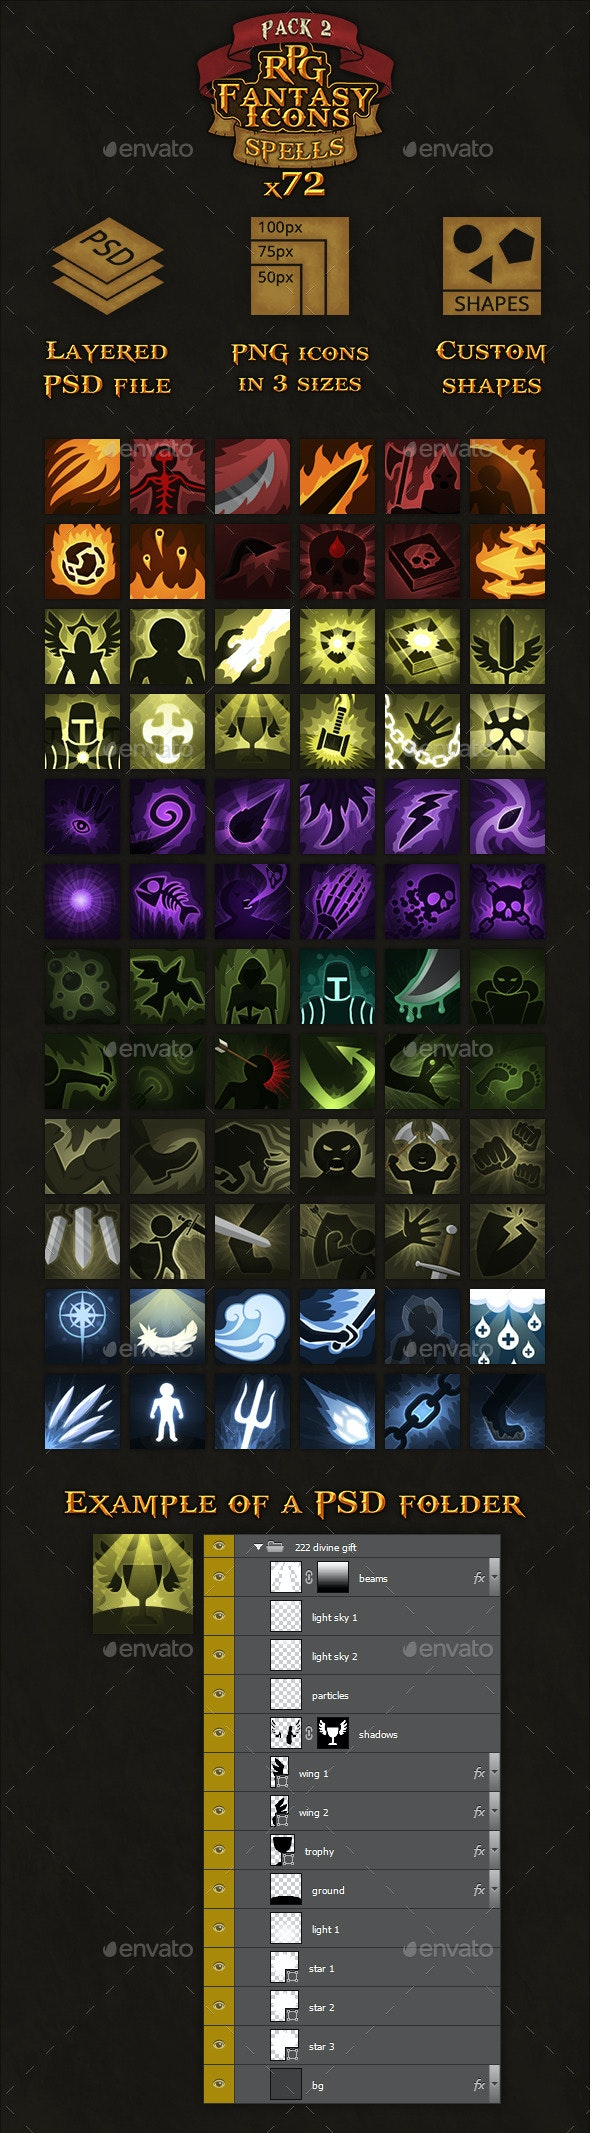 72 RPG Fantasy Spells Icons - Miscellaneous Game Assets